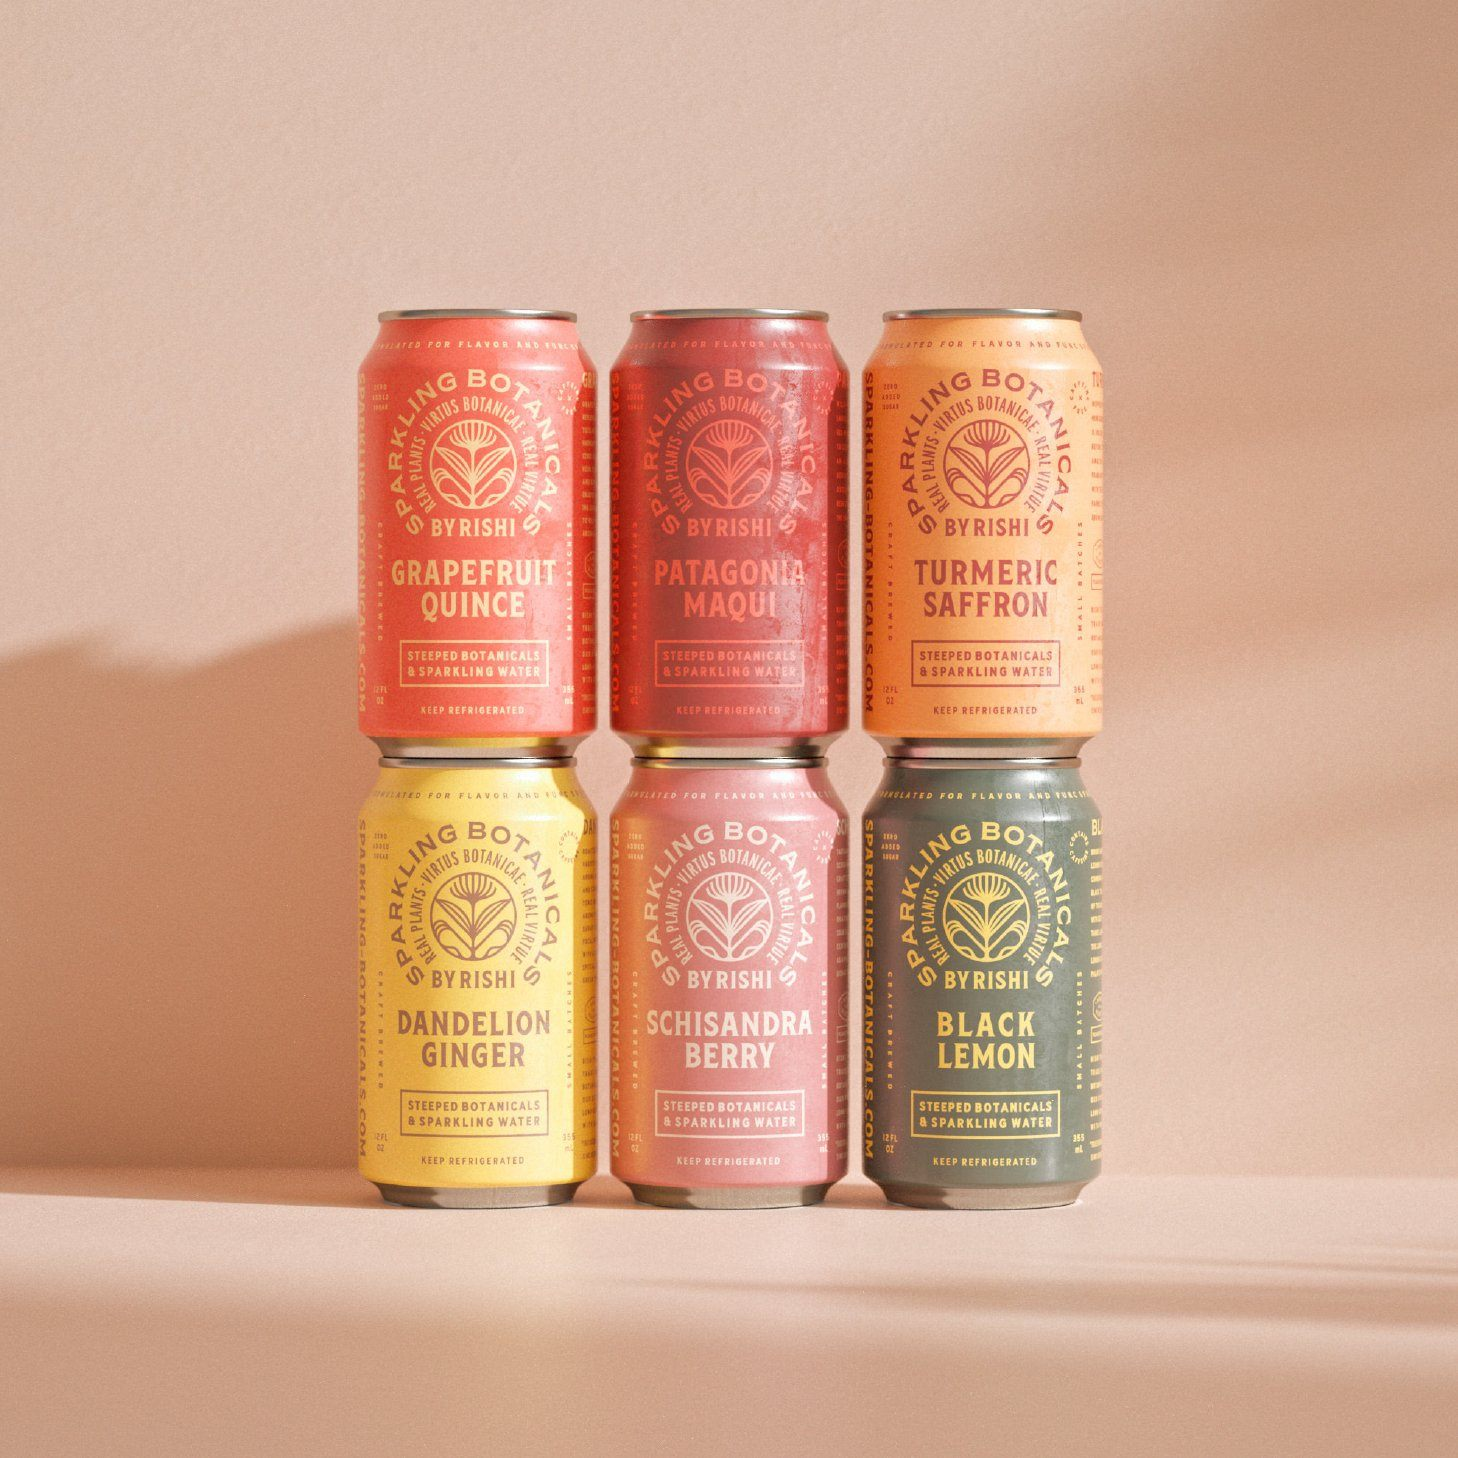 Rishi Sparkling Botanicals - 2 Cases of 12oz cans *Free Shipping*